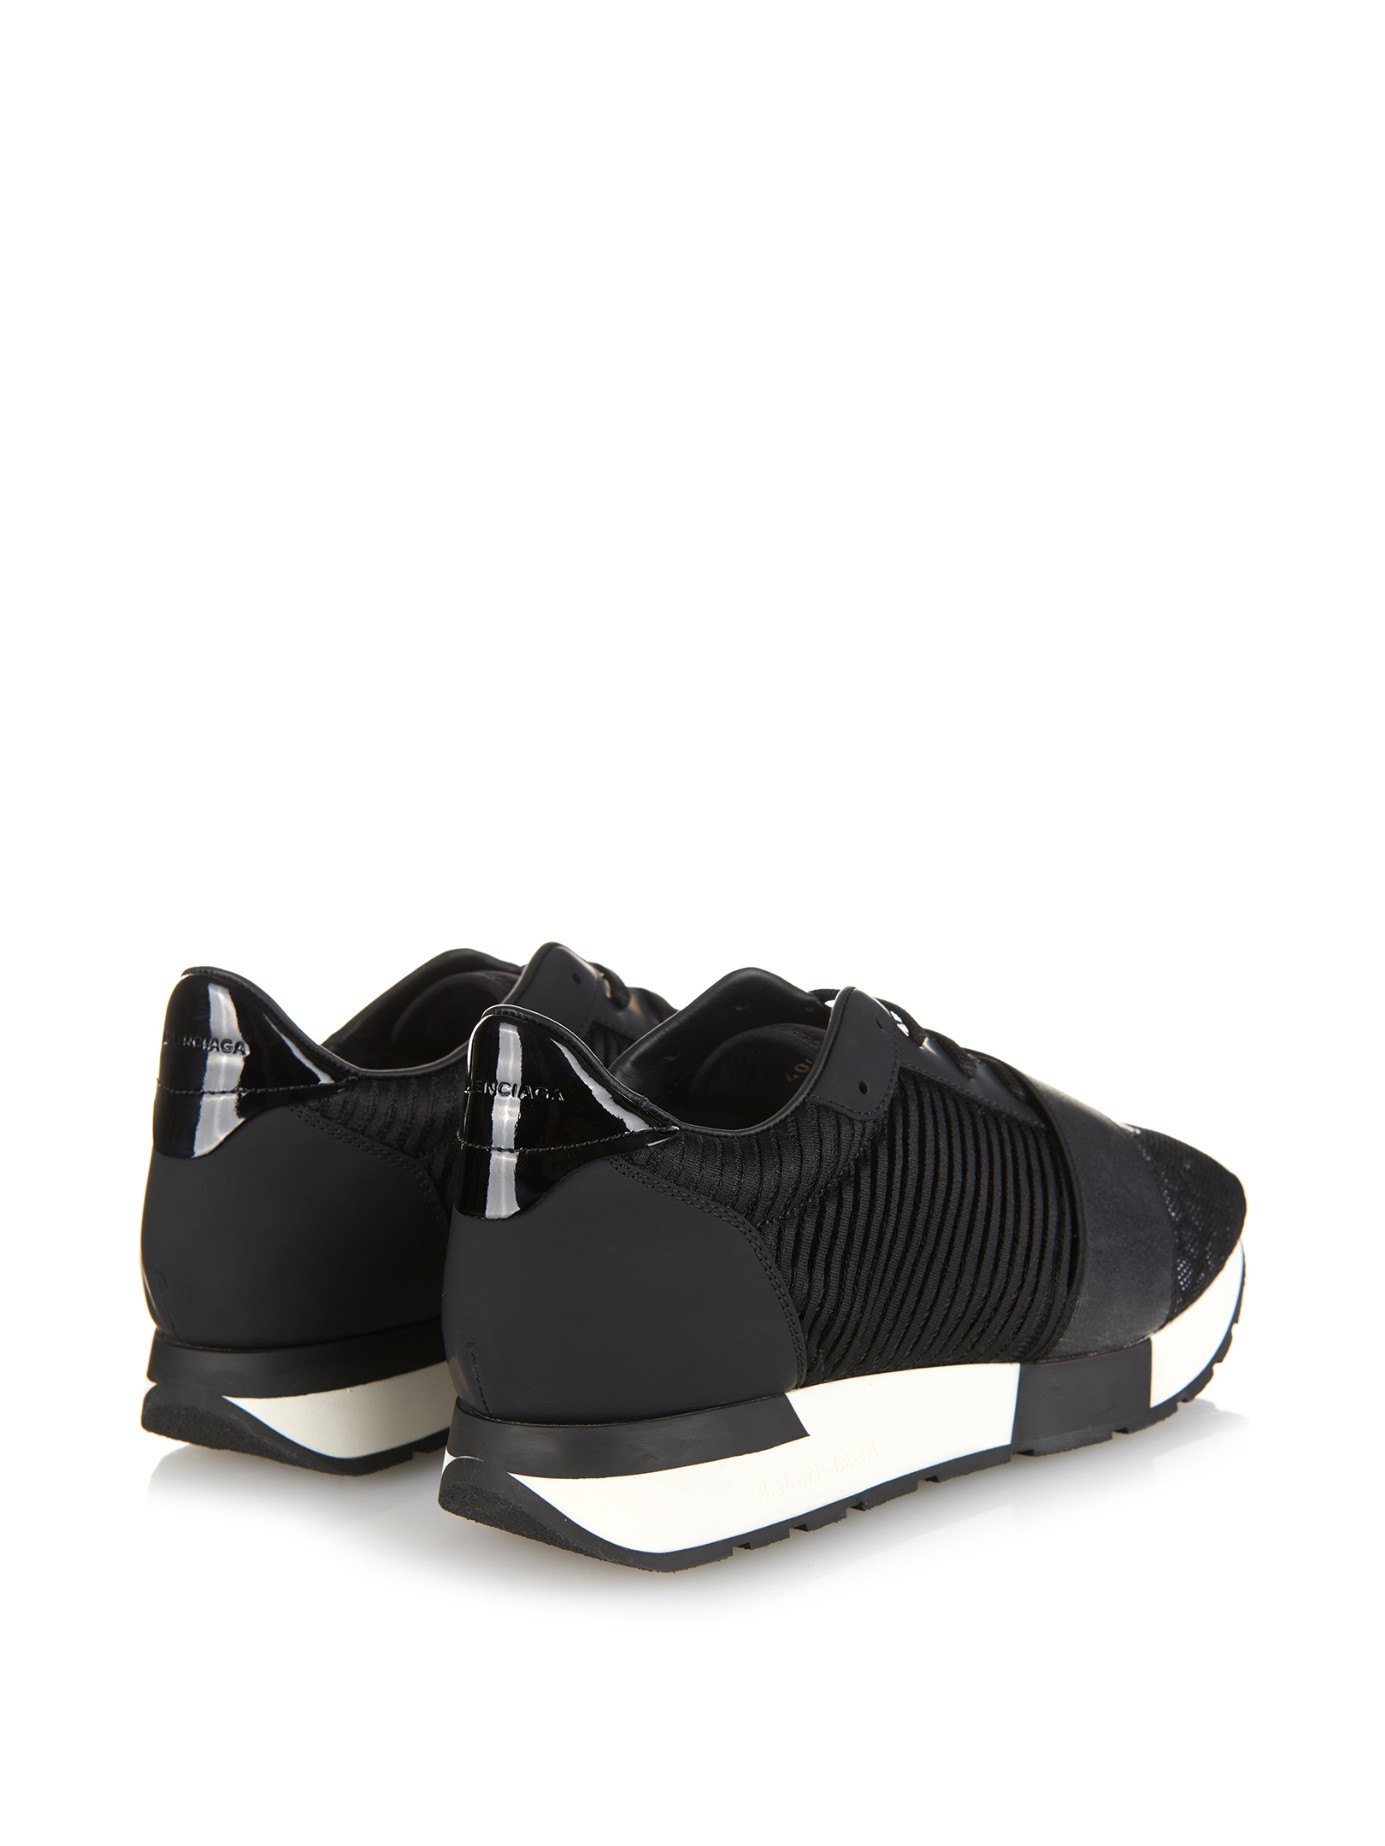 Lyst - Balenciaga Multi-Panel Low-Top Trainers in Black c10706a16